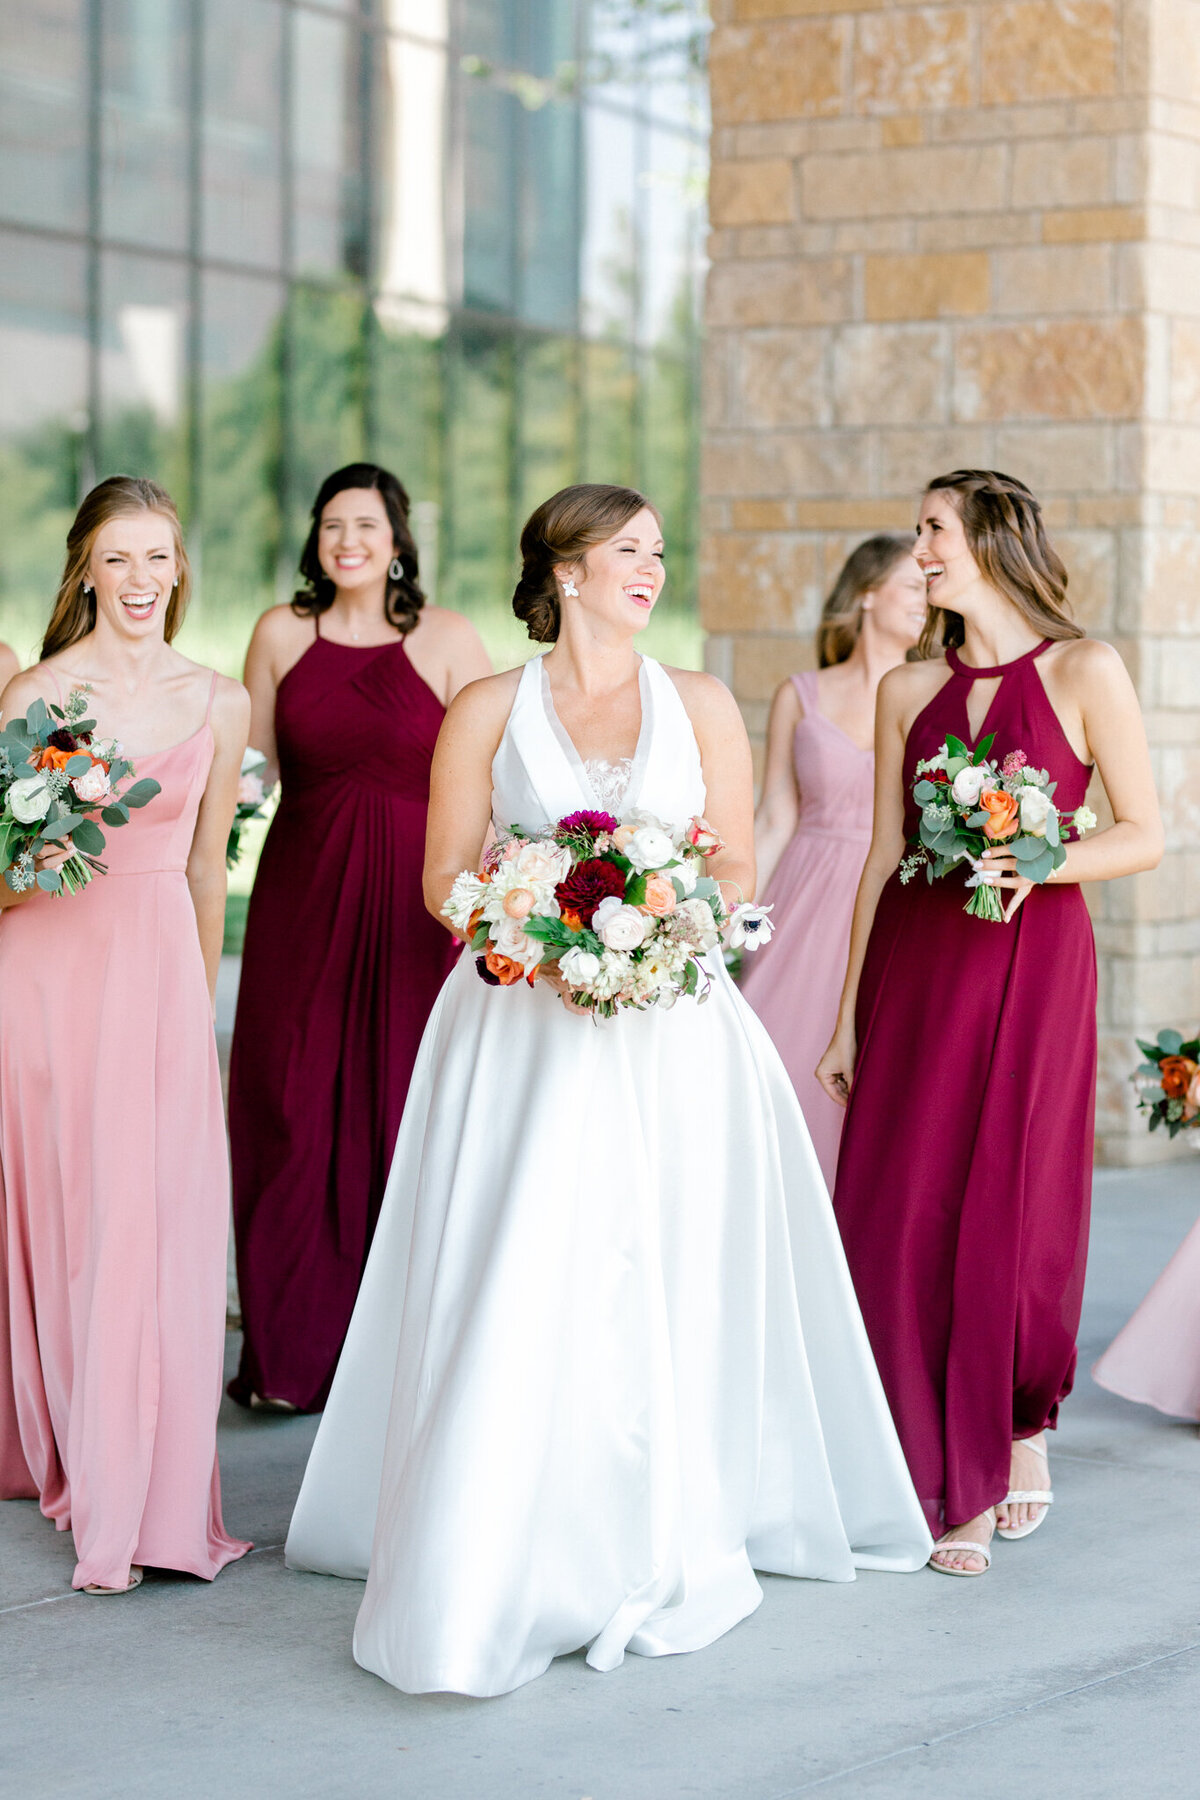 Kaylee & Michael's Wedding at Watermark Community Church | Dallas Wedding Photographer | Sami Kathryn Photography-83